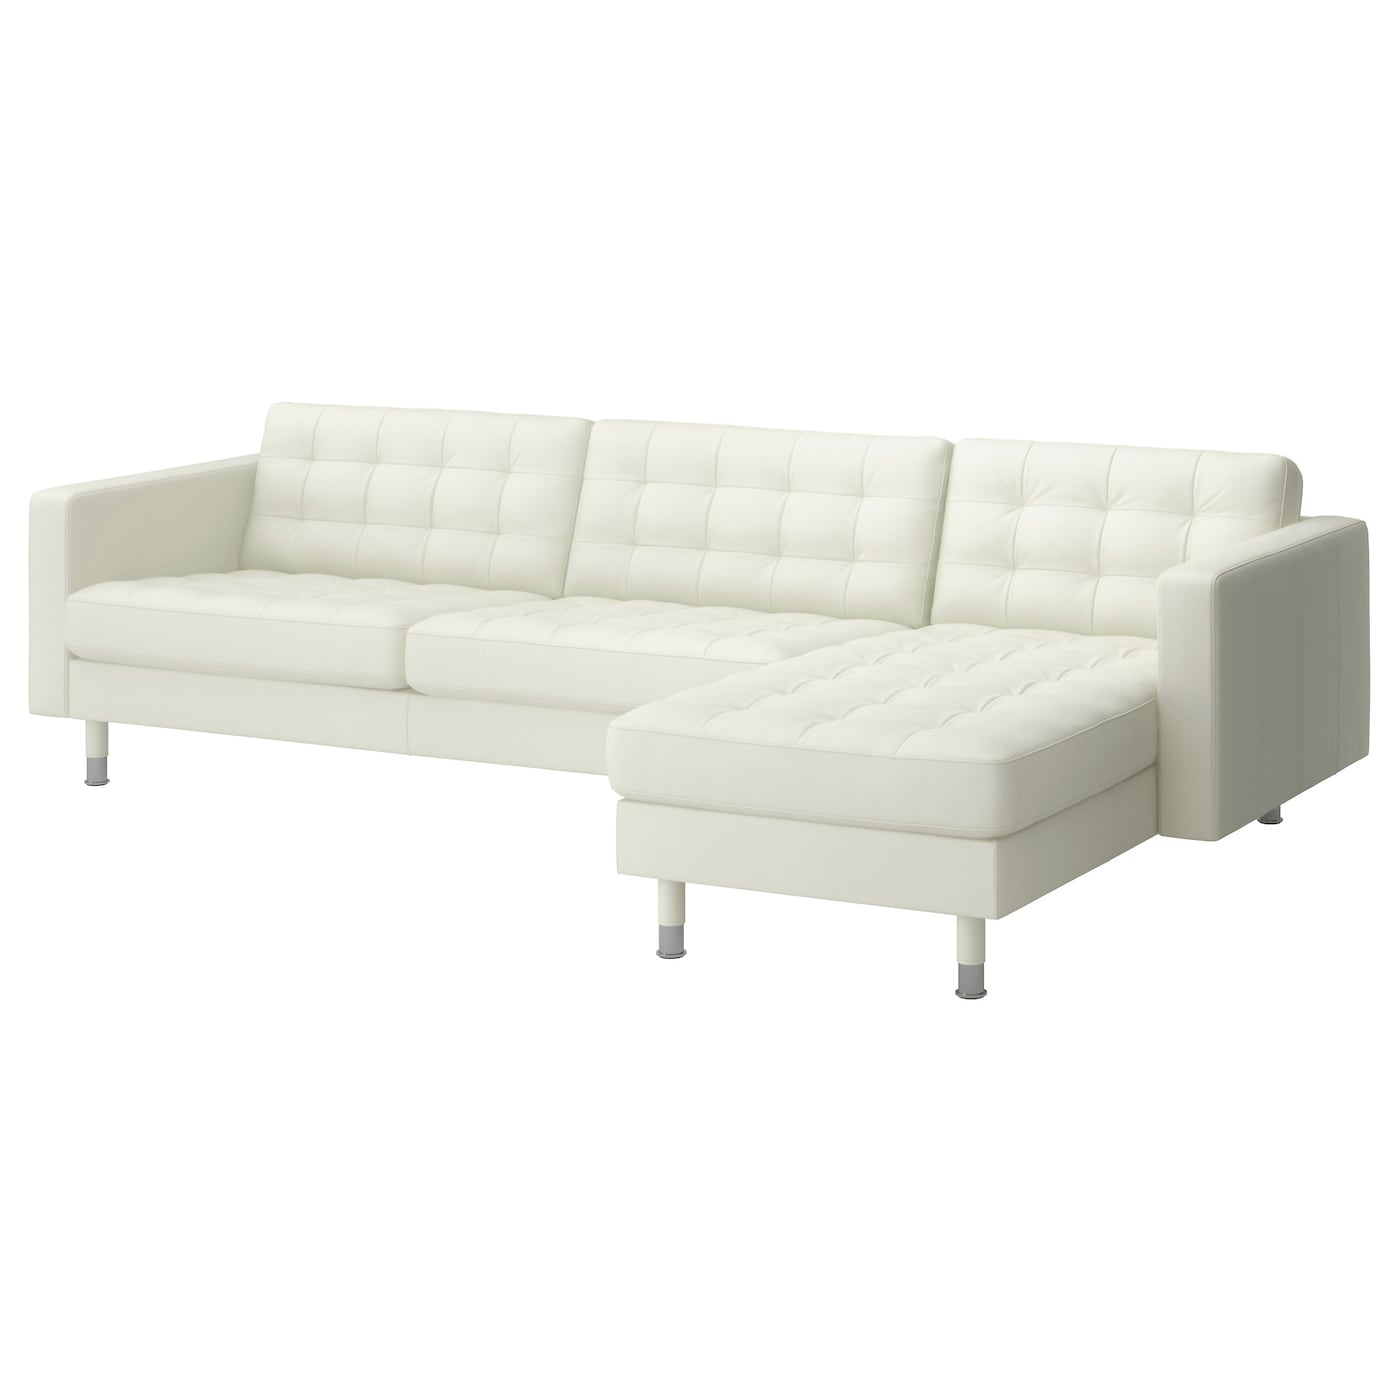 4 Seater Sofa Ikea Kivik 4 Seat Sofa Orrsta Light Grey Ikea TheSofa